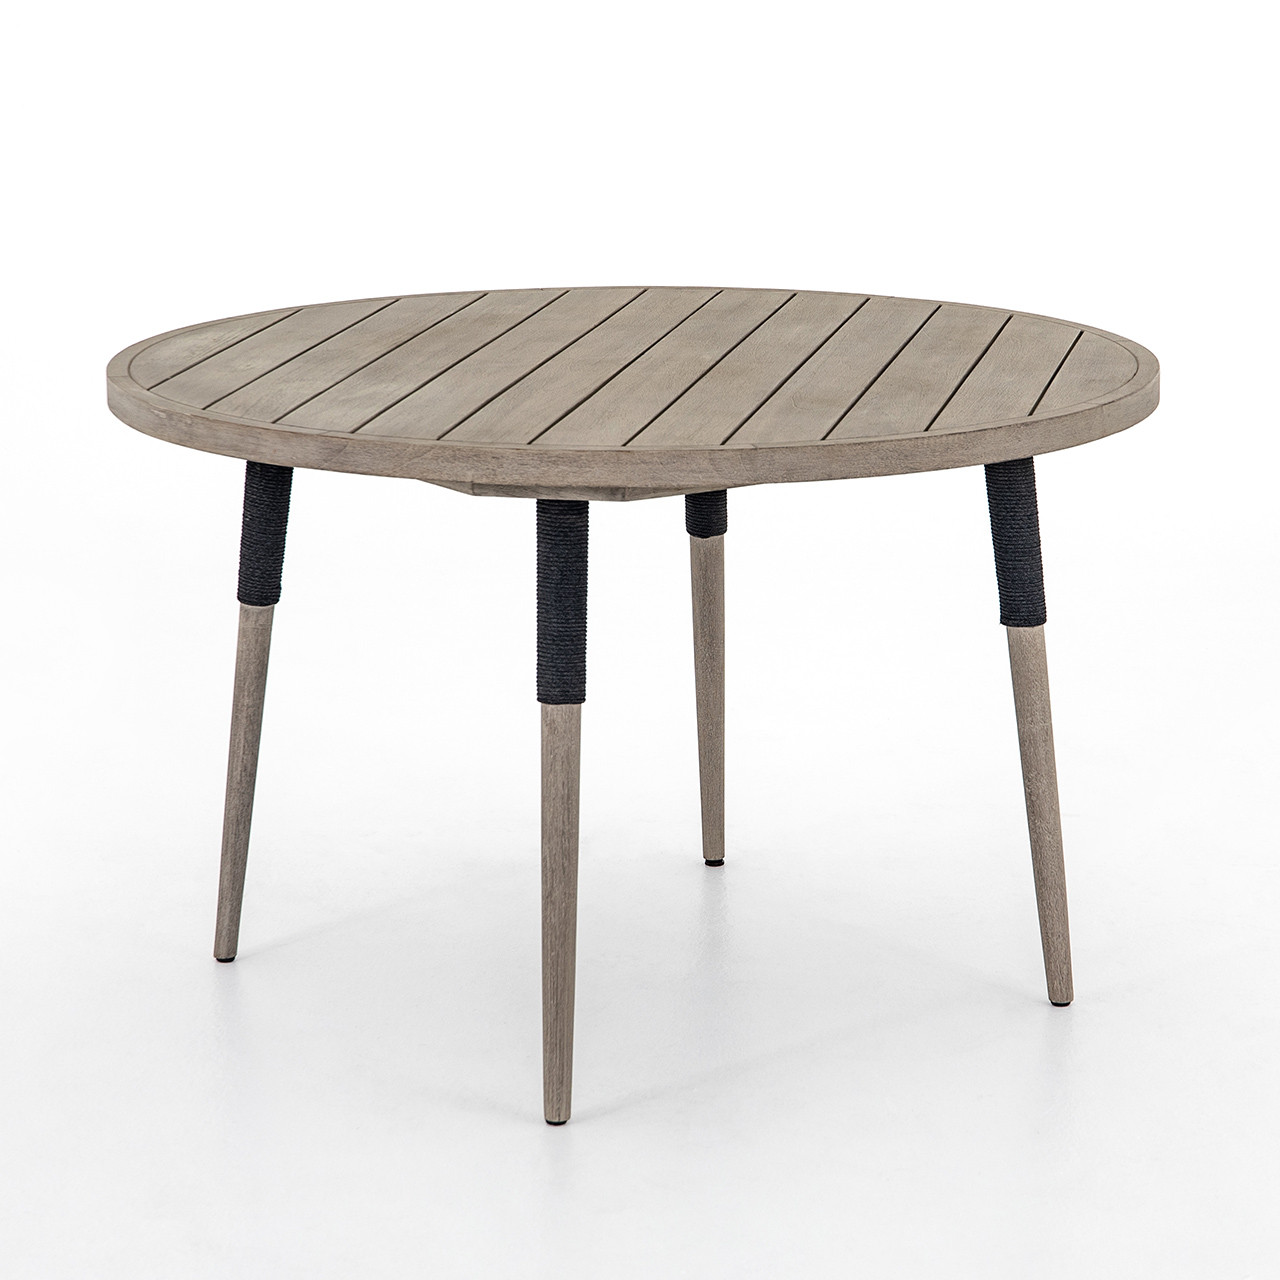 Silhouette Teak Outdoor Round Dining Table Free Shipping